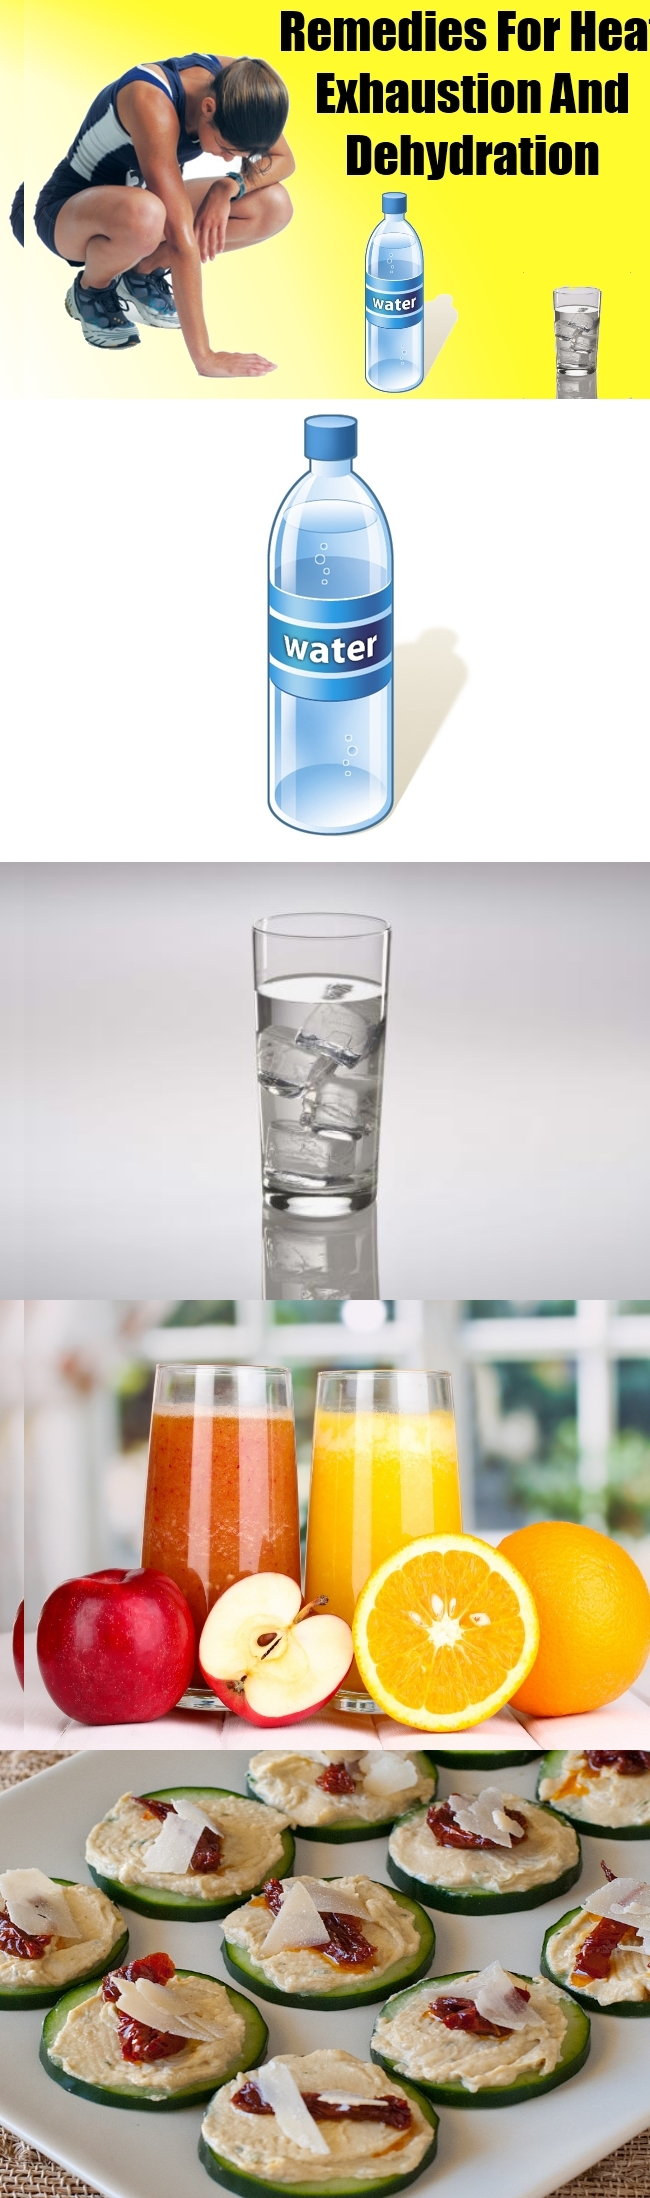 Remedies for Heat Exhaustion and Dehydration